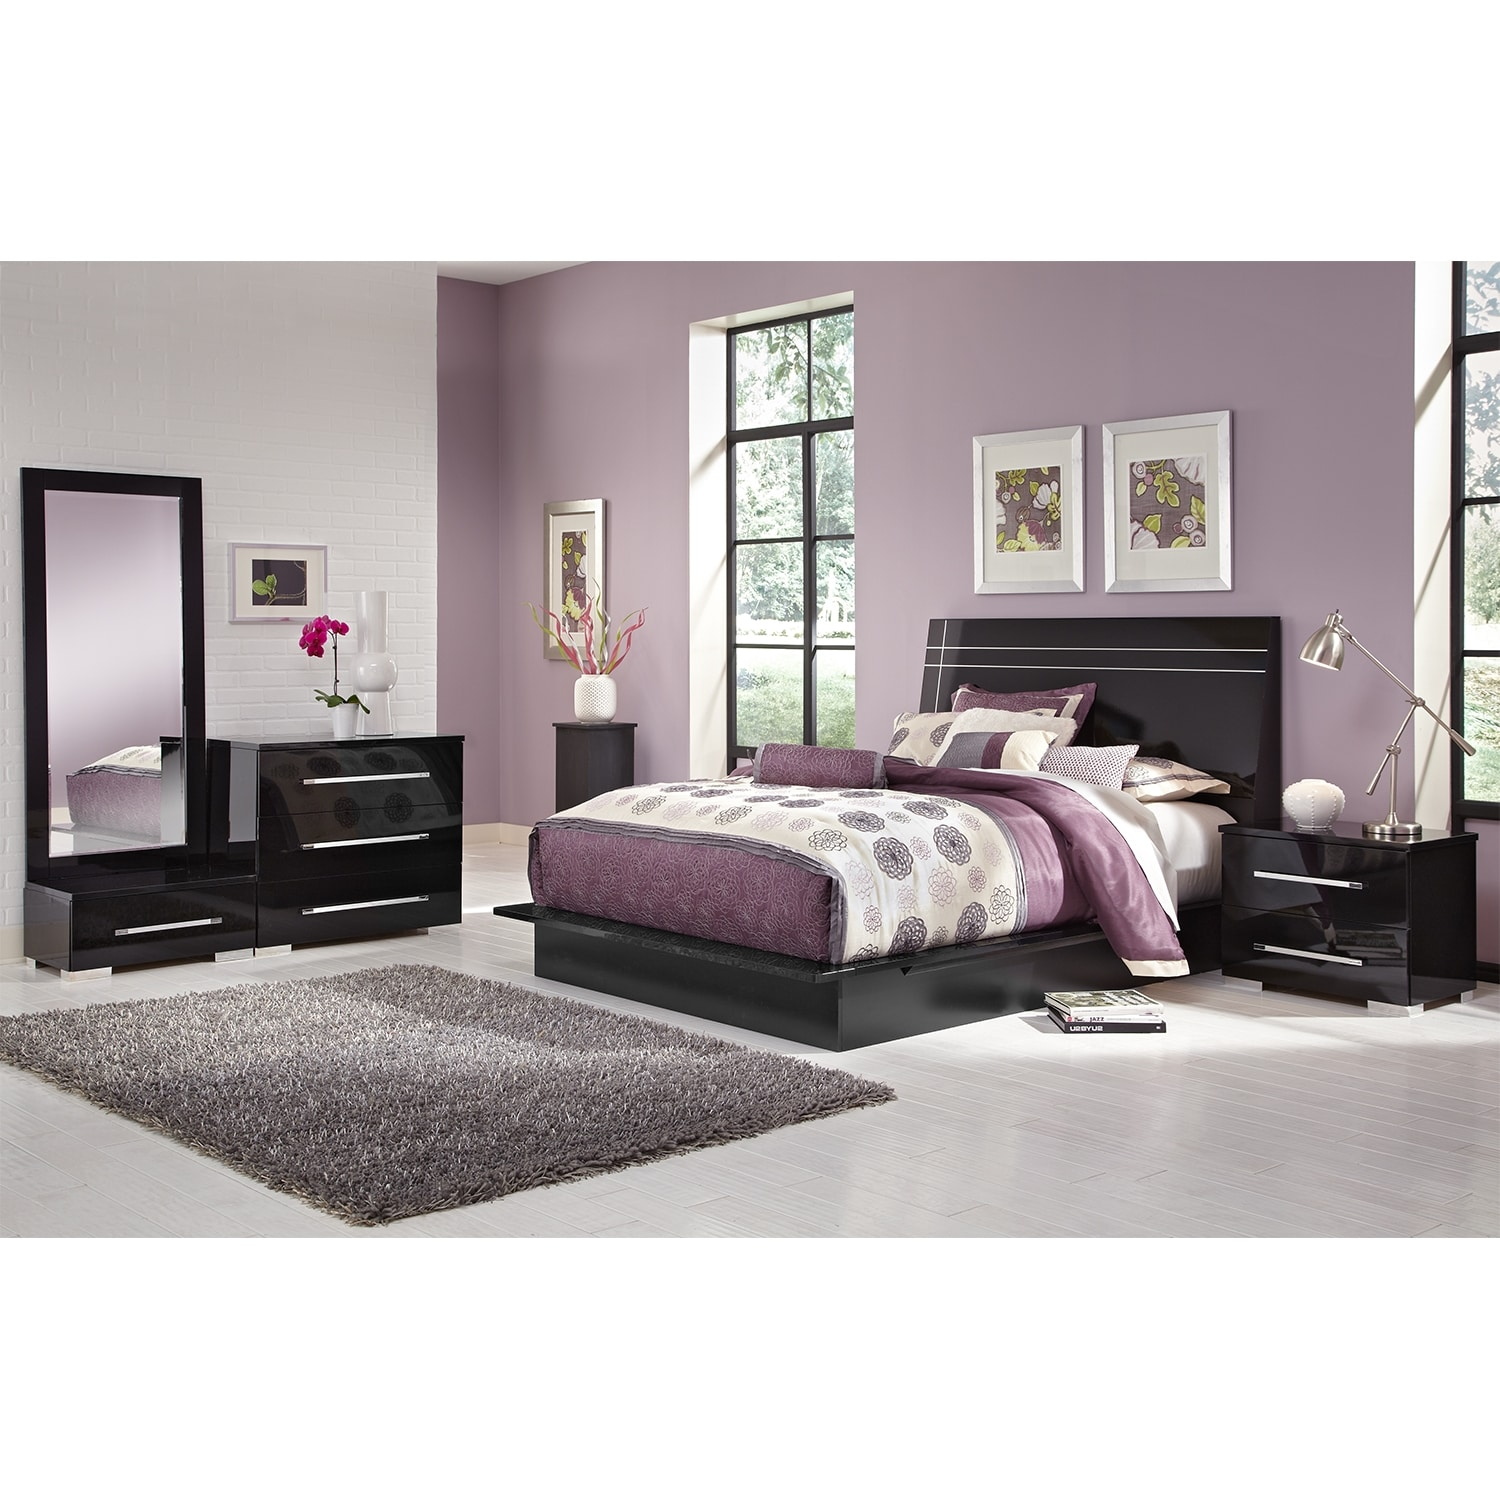 Dimora 6-Piece Queen Panel Bedroom Set - Black